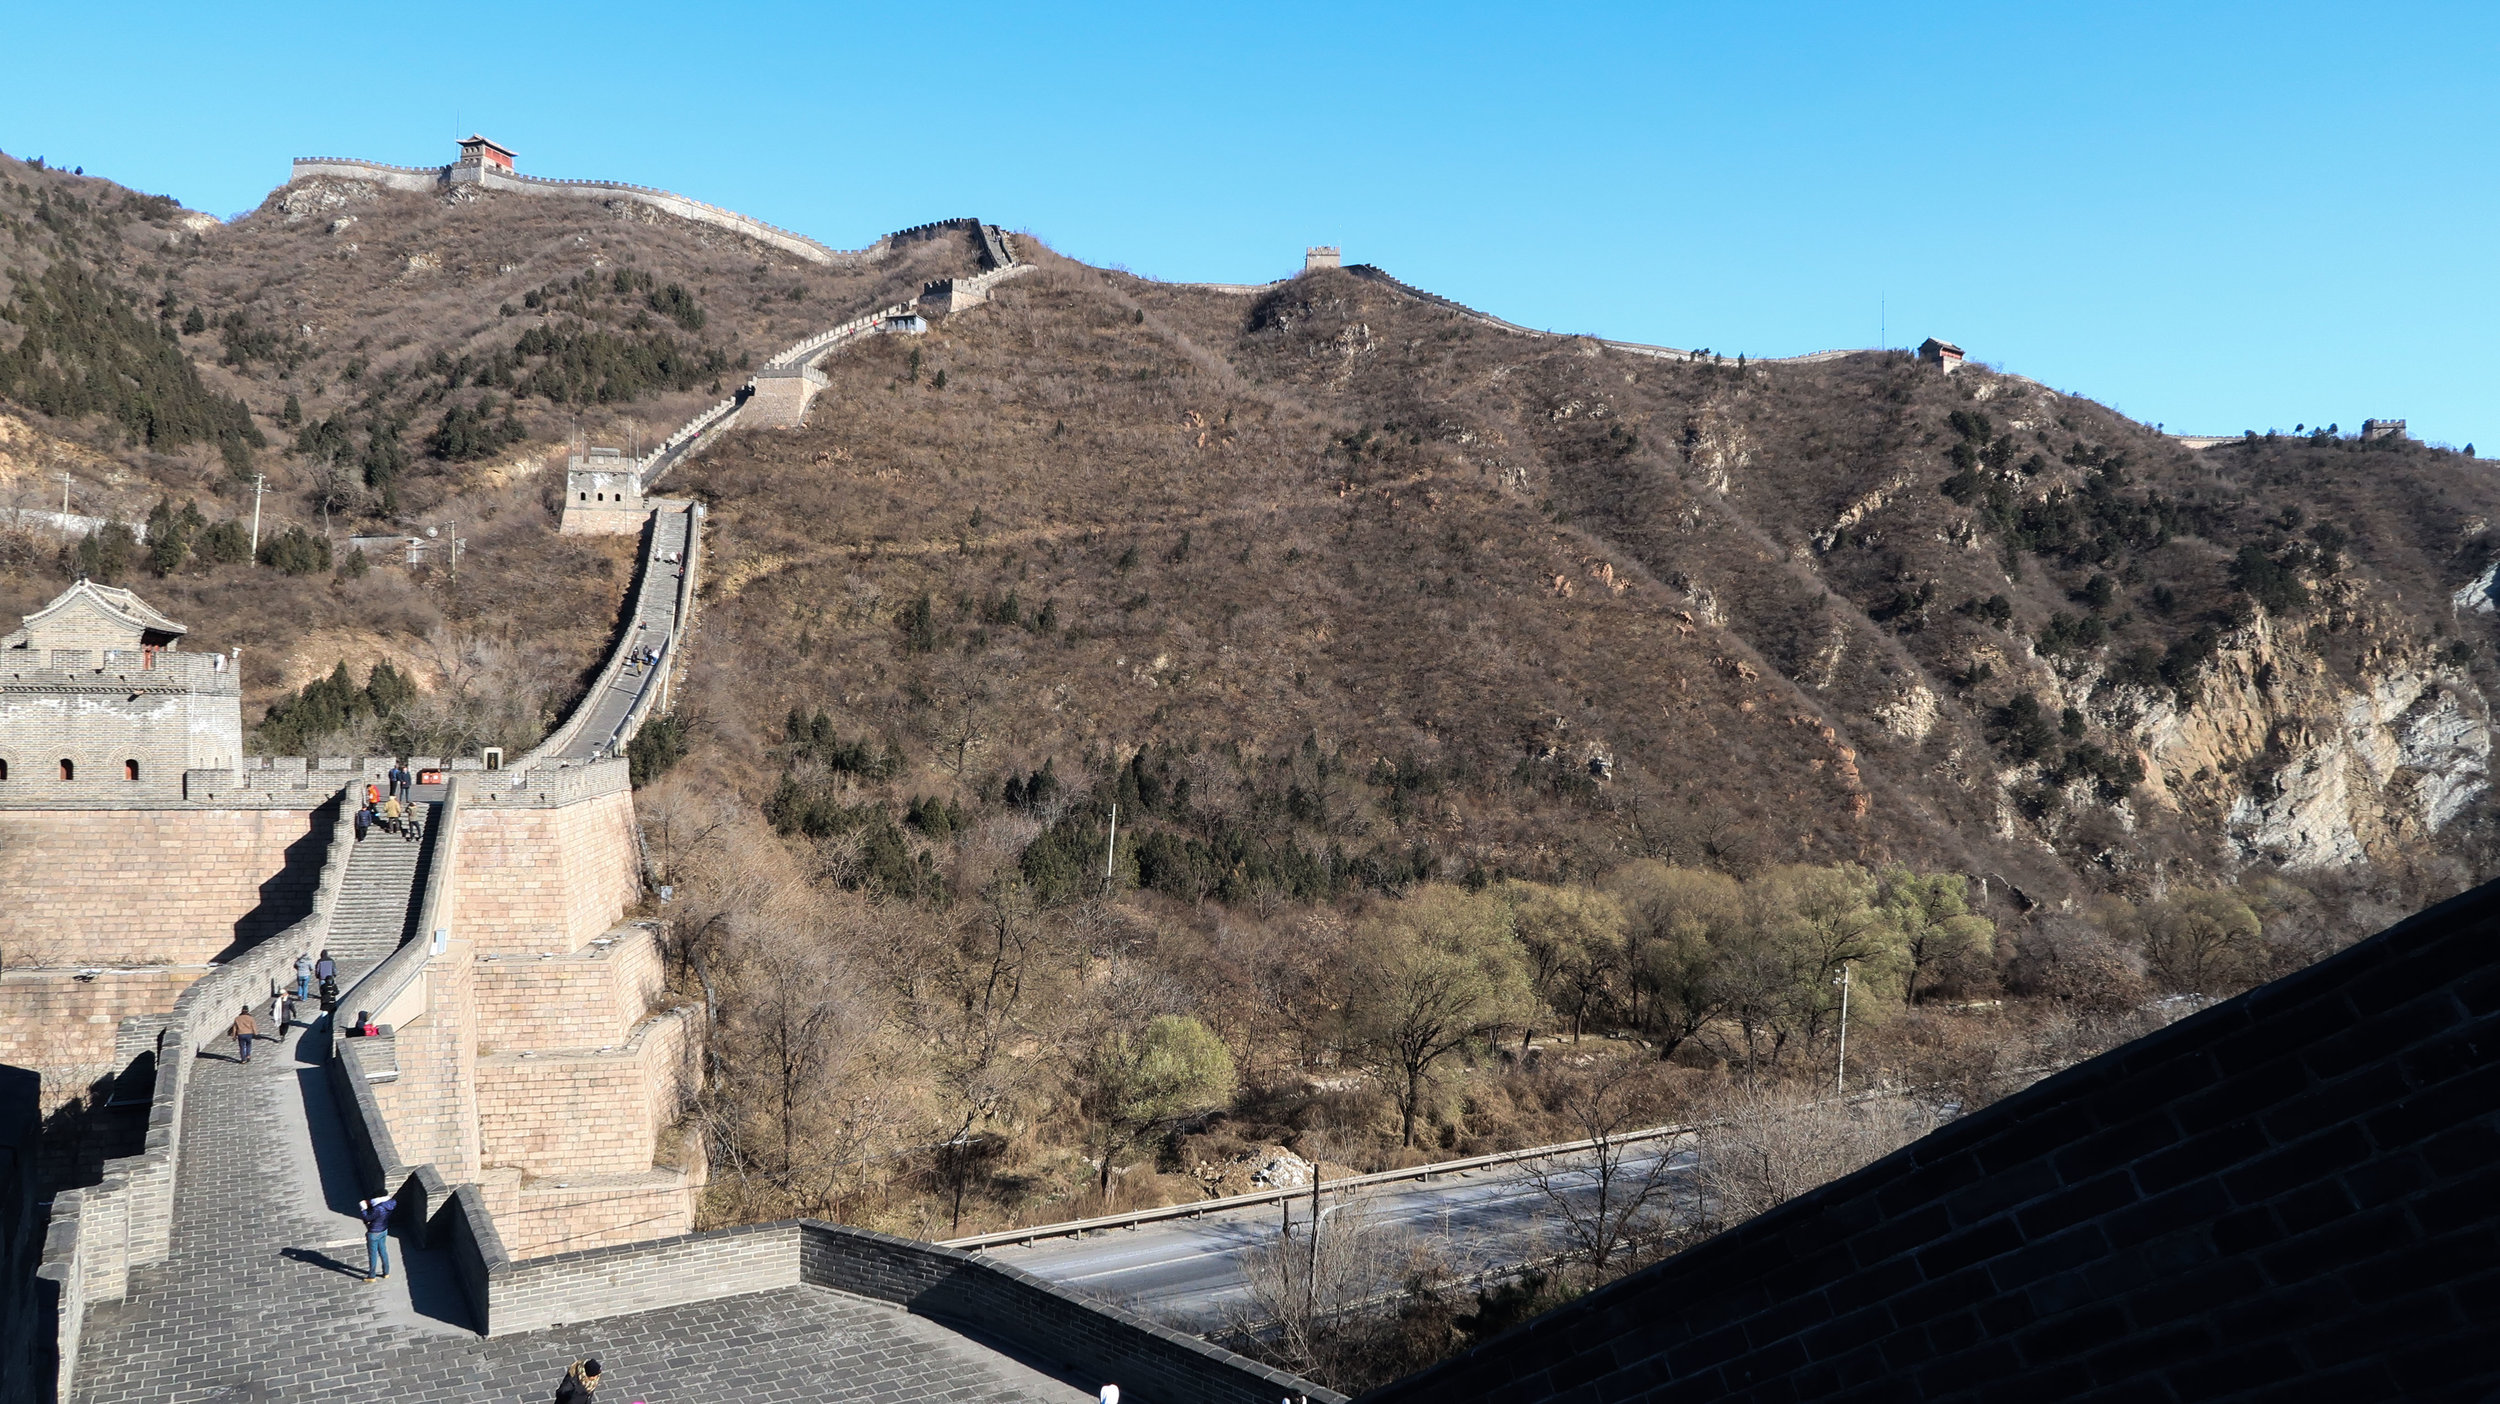 Beijing, China: The Great Wall